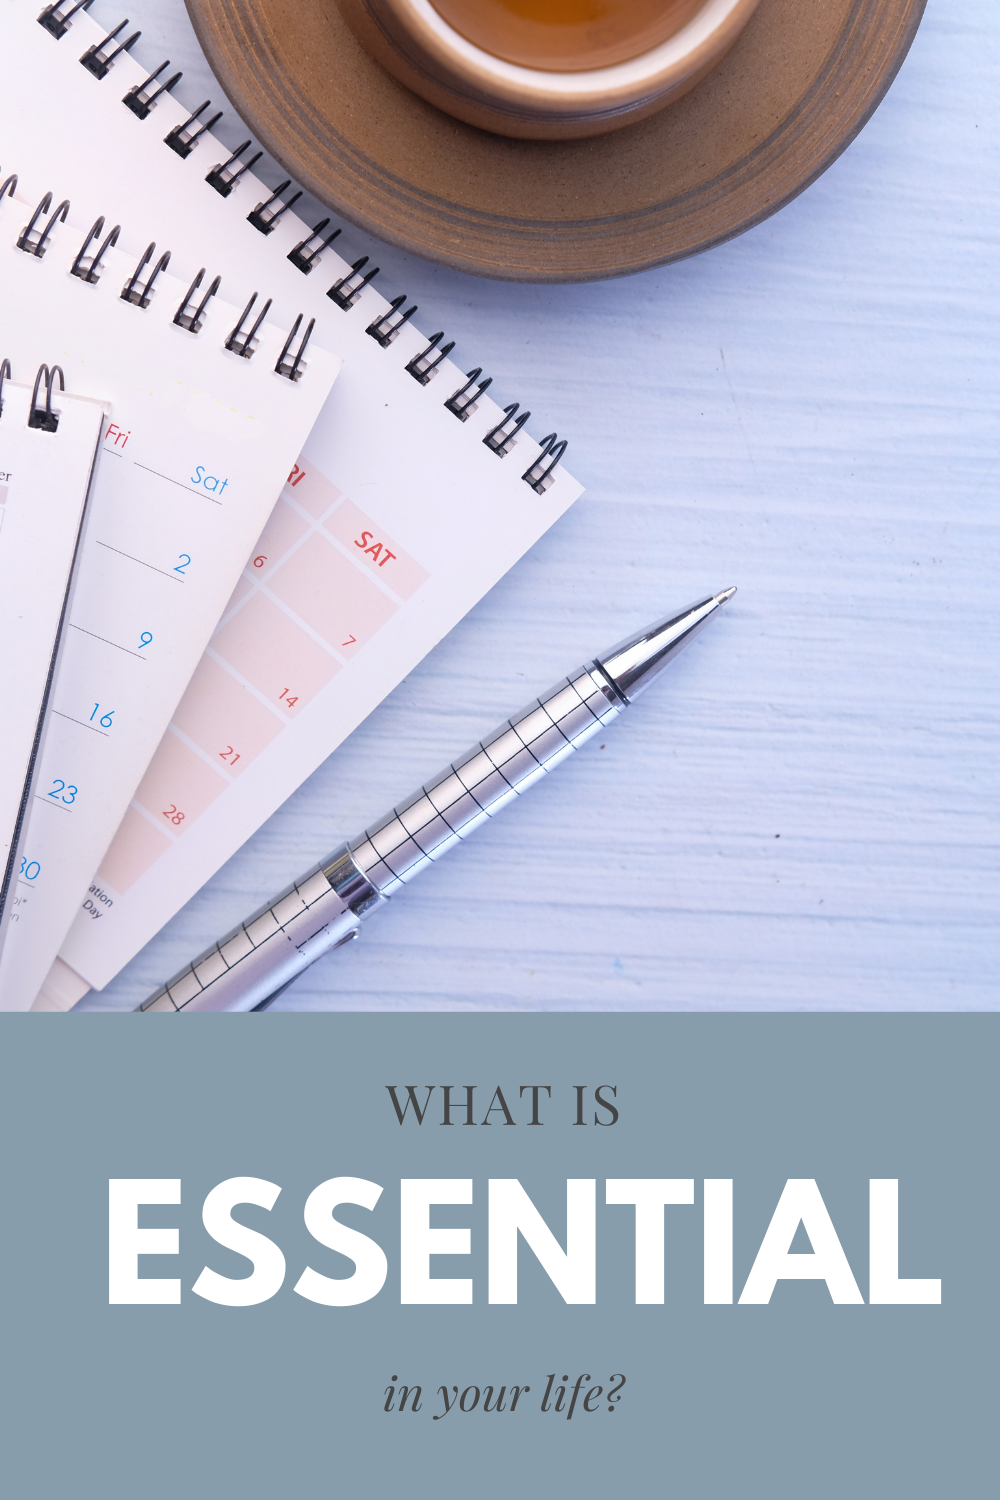 What is essential in your life